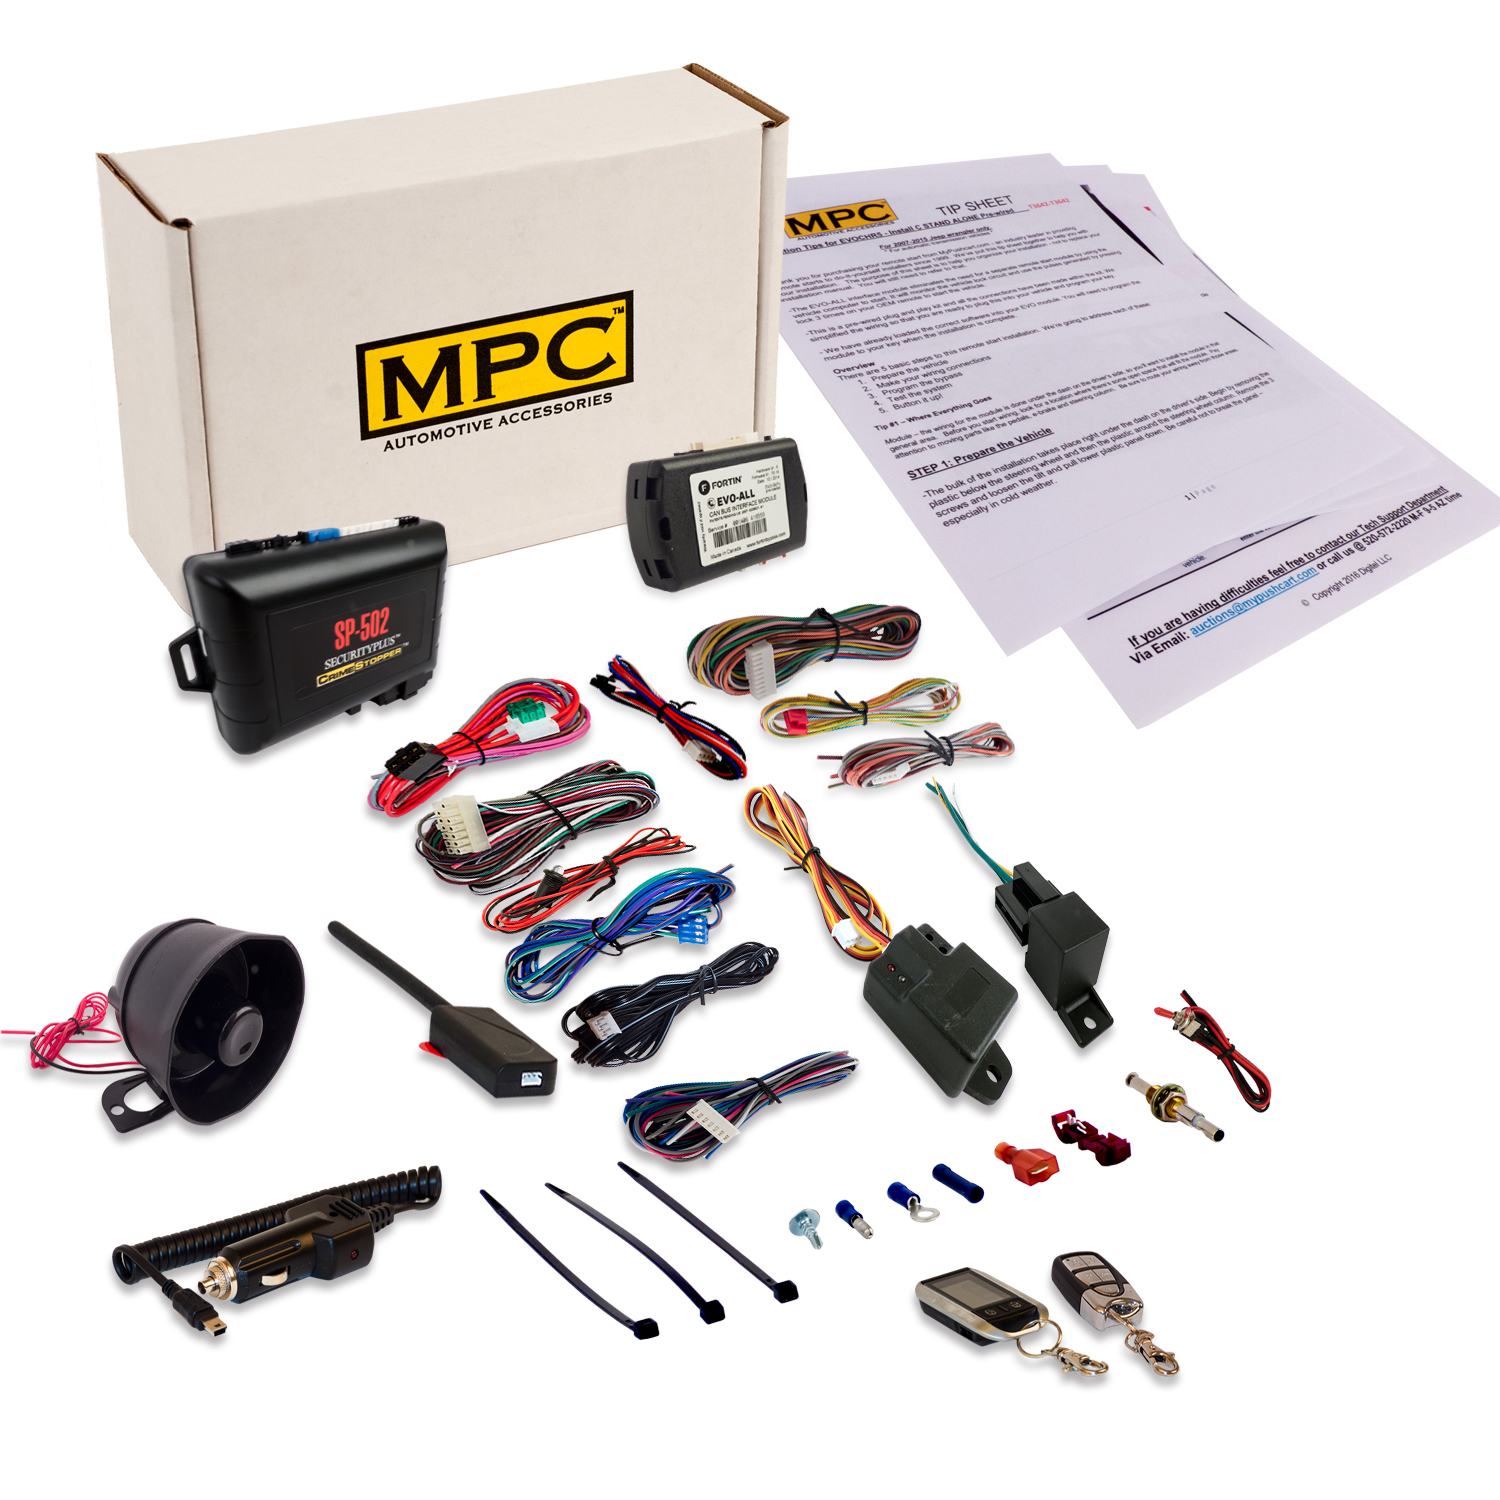 Deluxe 2-Way Remote Starter & Car Alarm W/ Keyless Bypass